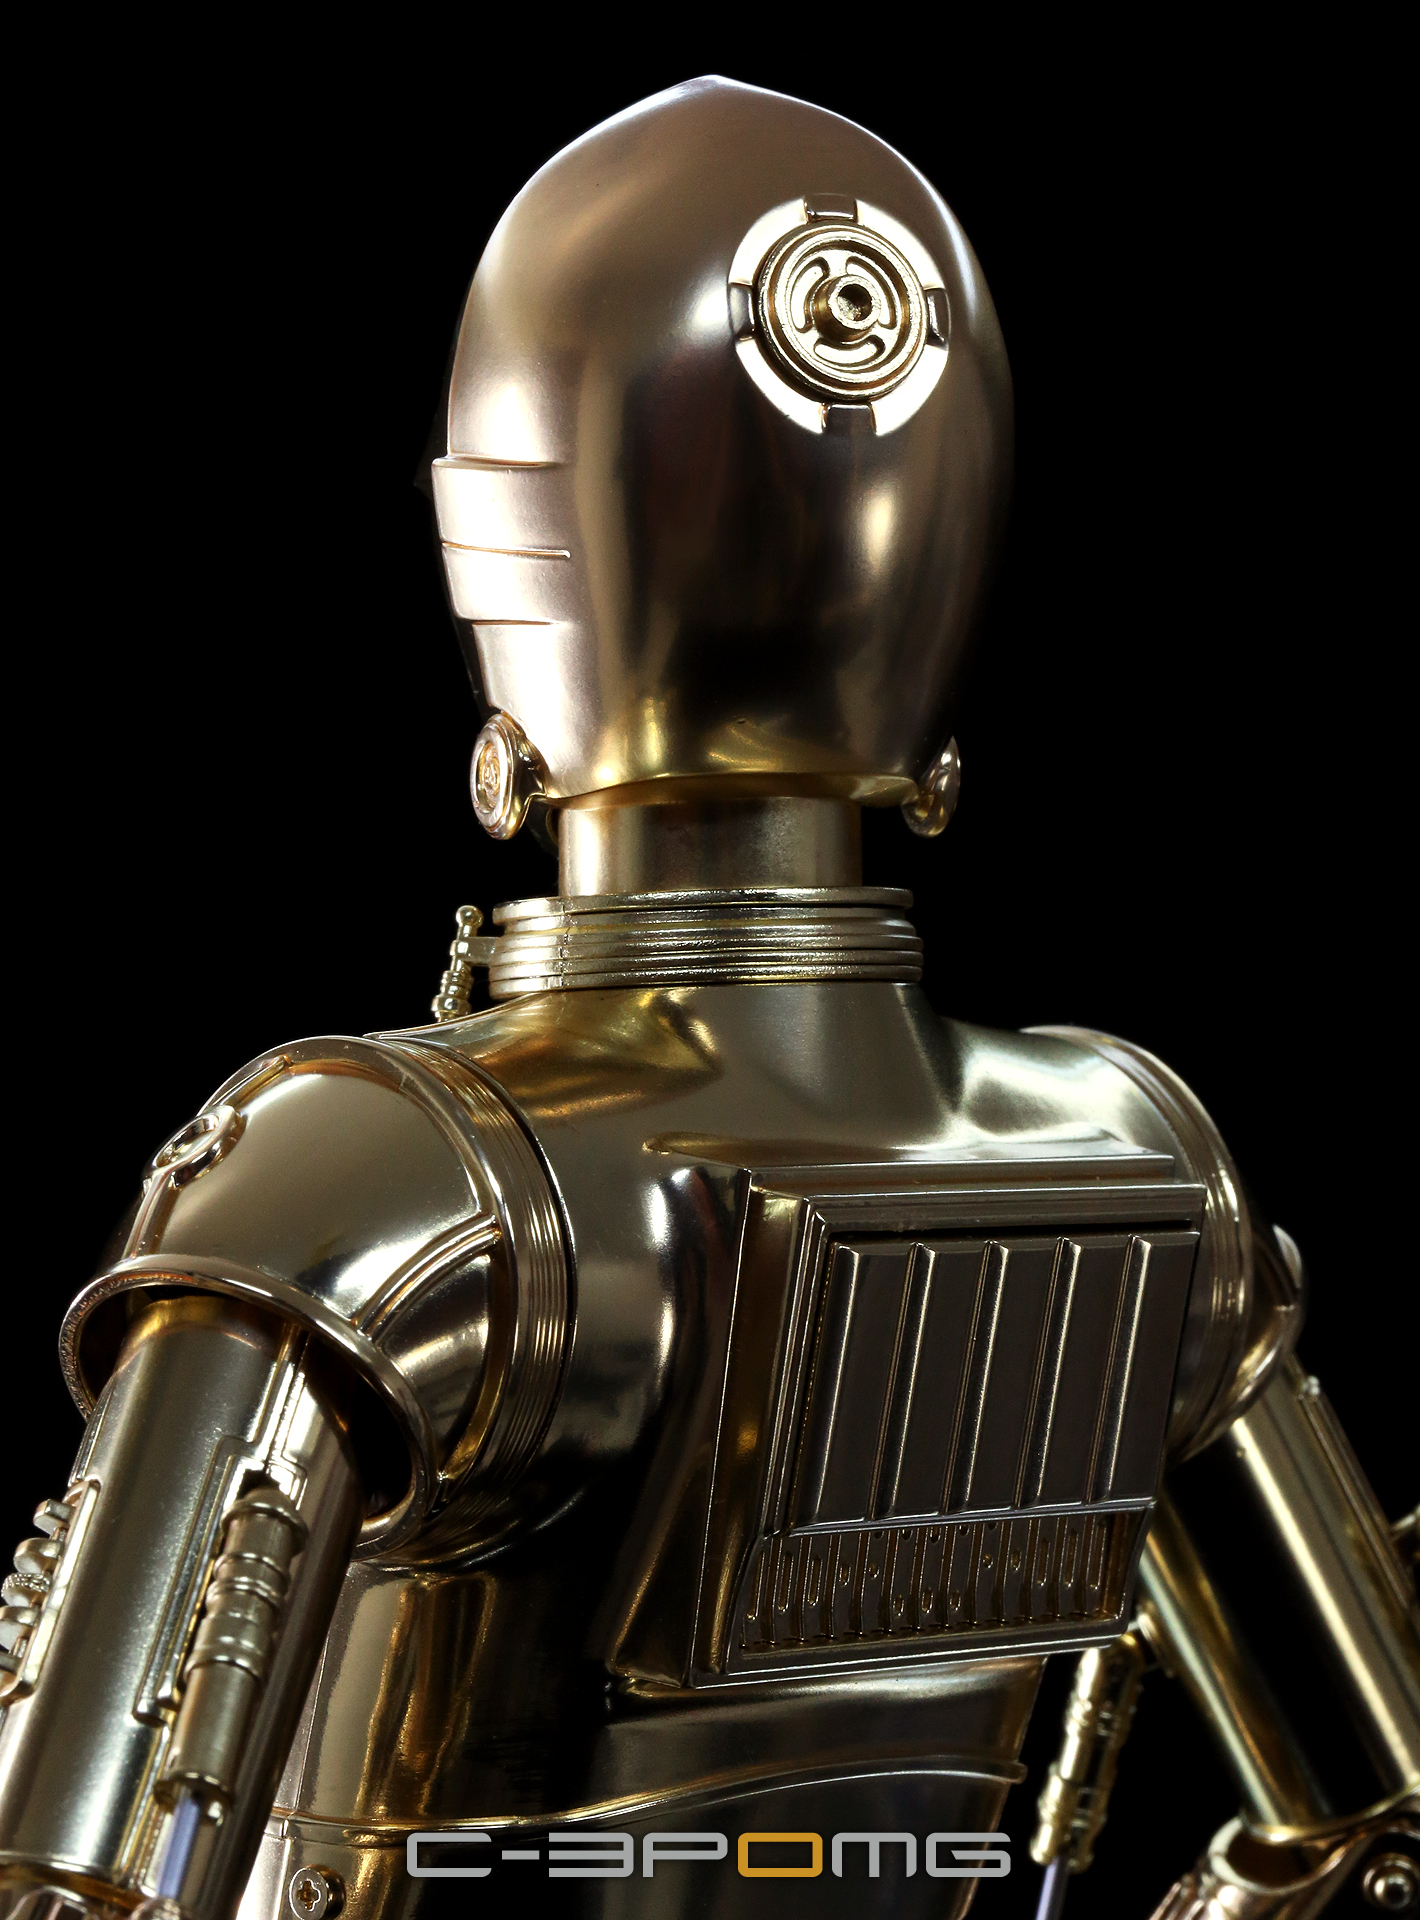 [Bandai] Star Wars: C-3PO - Perfect Model 1/6 scale - LANÇADO!!! - Página 2 C-3PO1131_zpsb44c3231